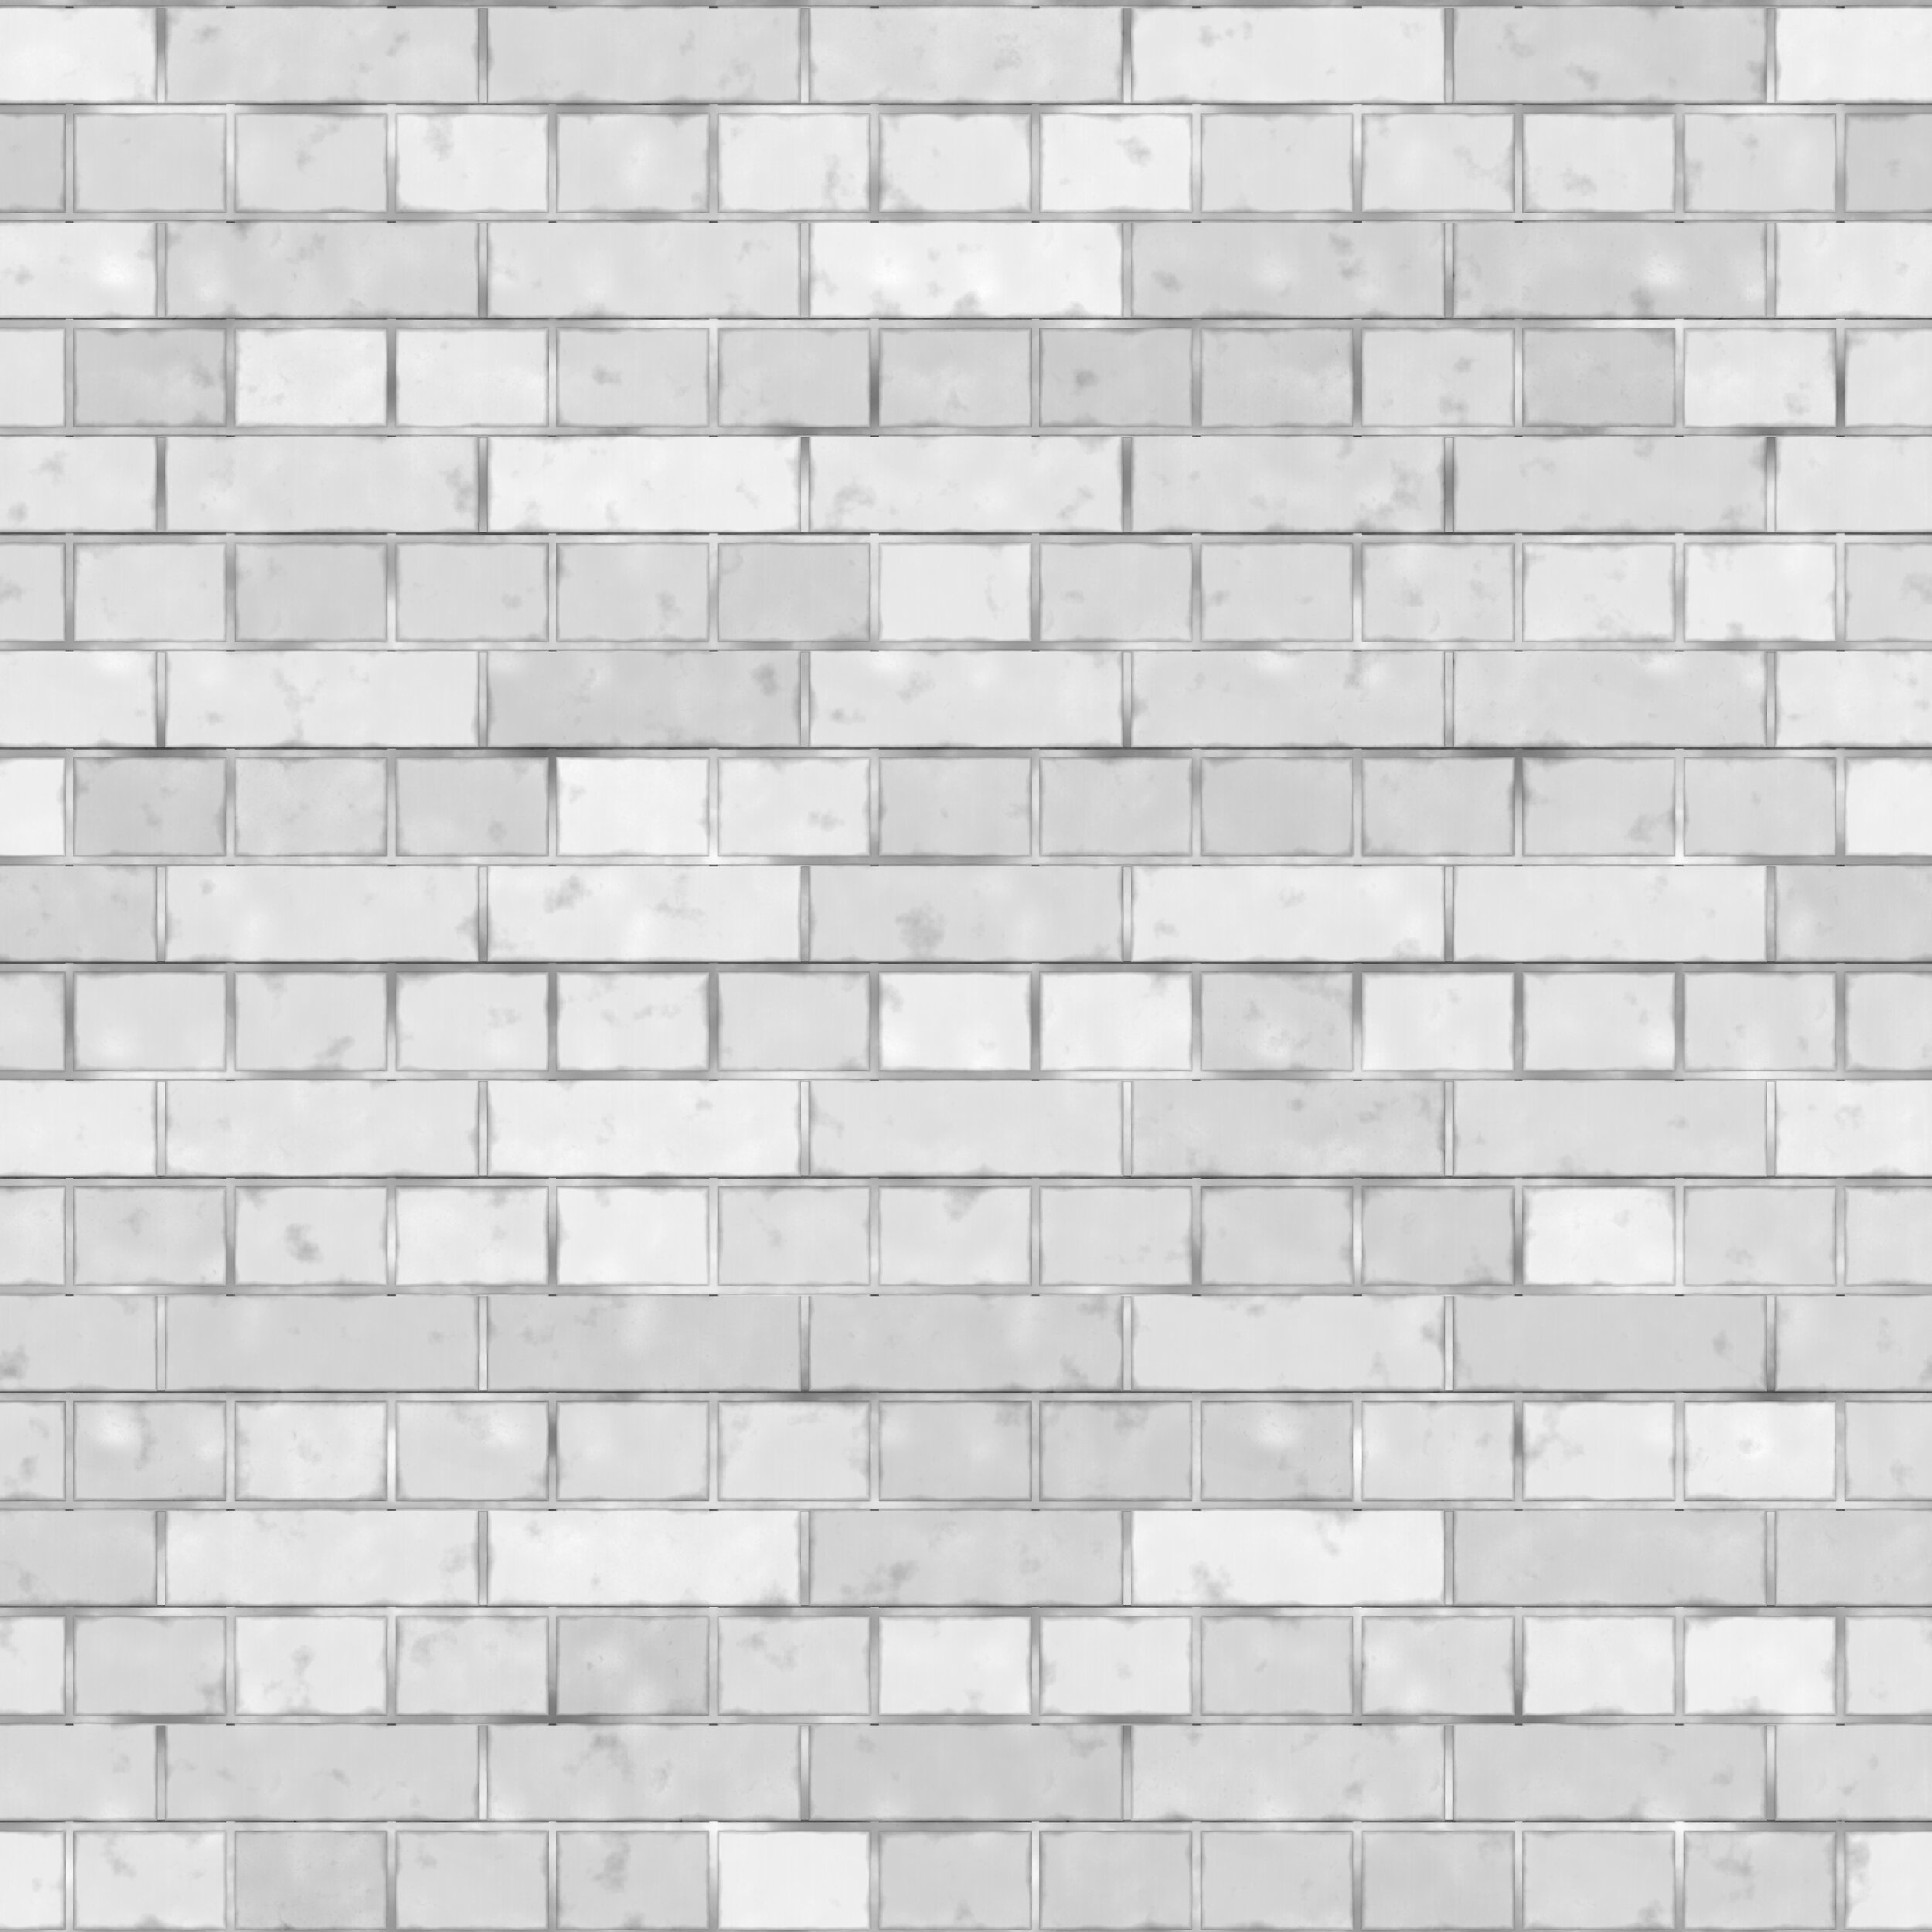 Bricks_AI_01C_White_DISP.jpg